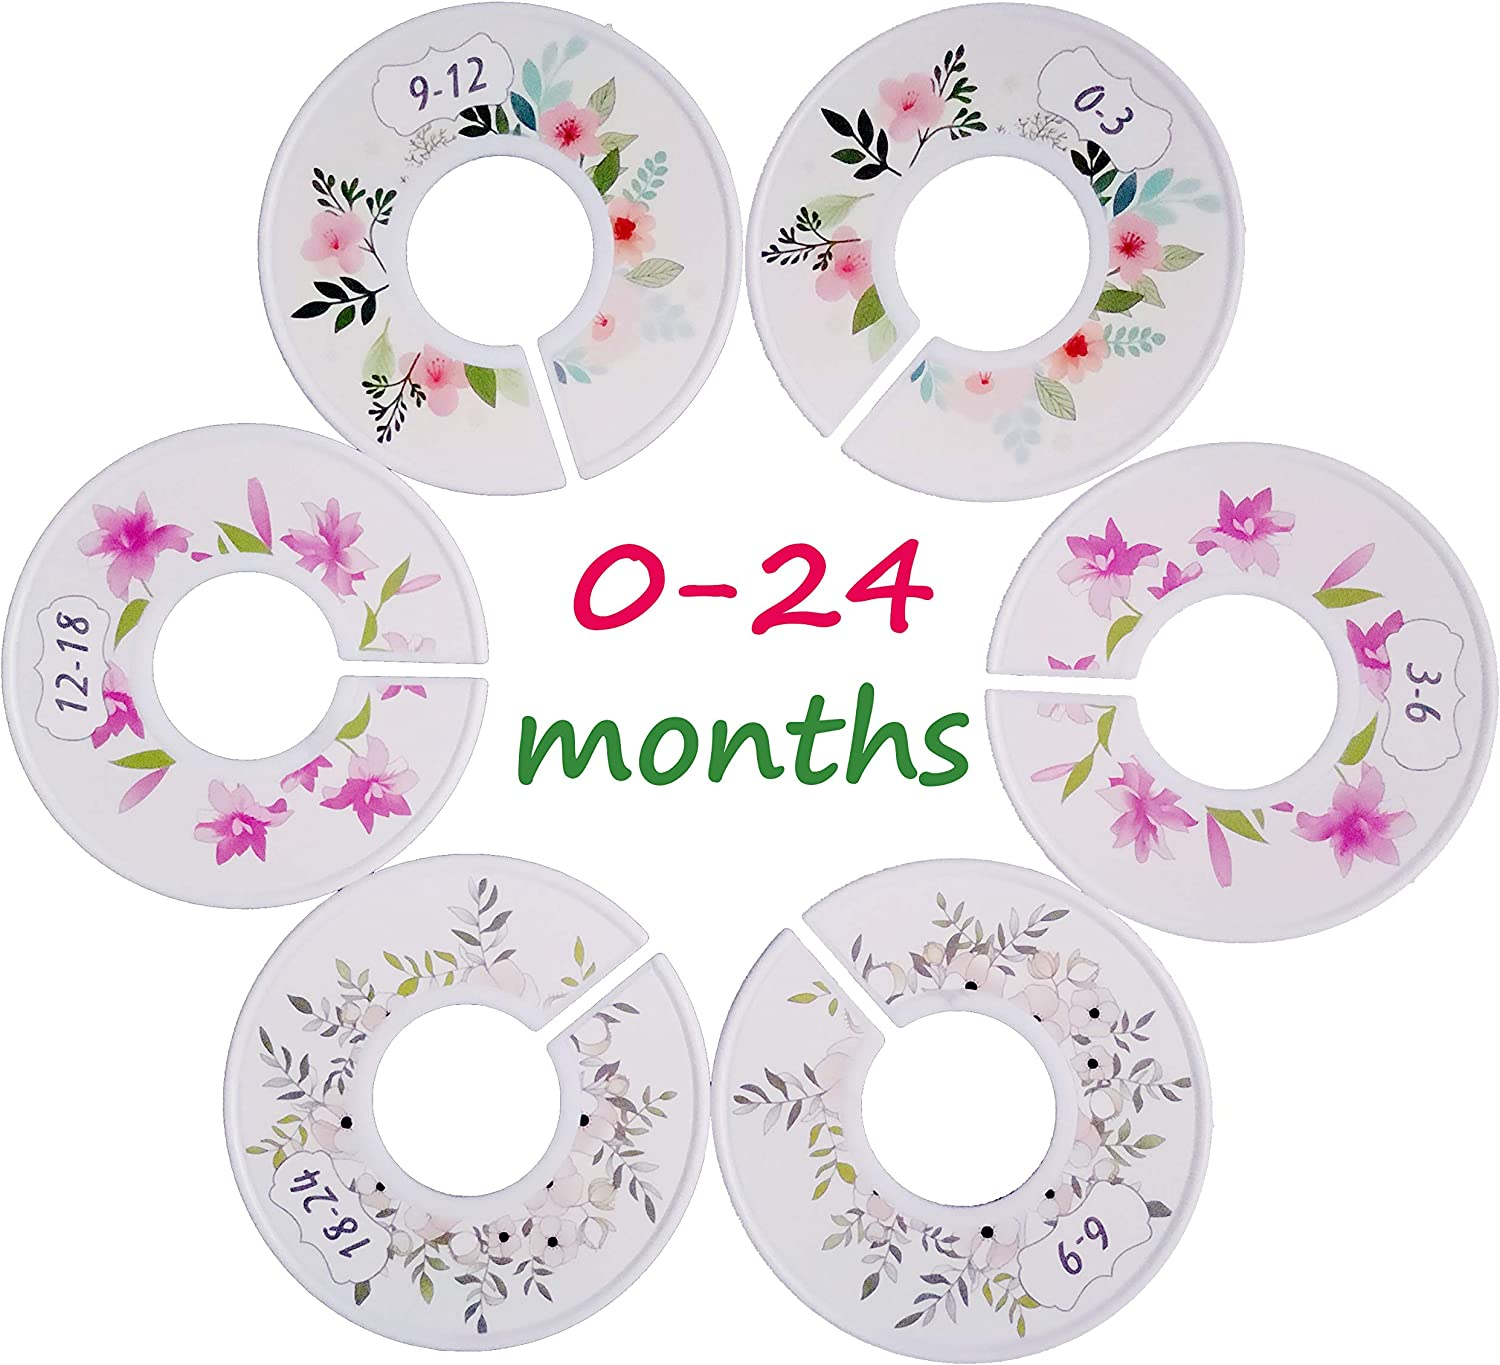 Elibeauty 6 Pieces Clothing Rack Size Dividers Baby Kids Closet Round Dividers with 0-3 Months to 18-24 Months